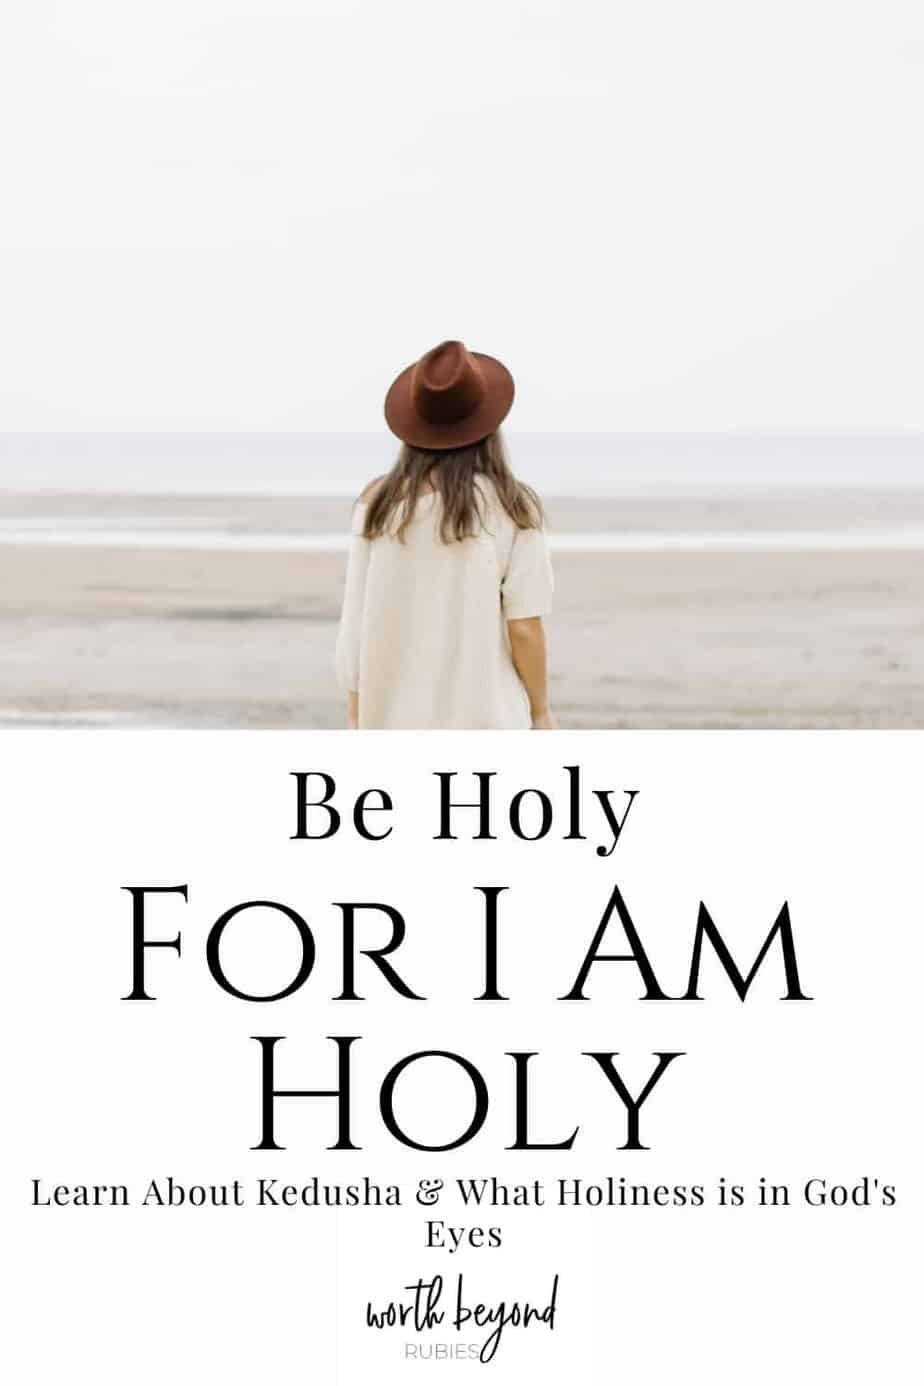 A woman with long brown hair in a beige sweater and a brown hat standing on a beach facing the water and text that says Be Holy for I am Holy - Learn About Kedusha and What Holiness is in God's Eyes